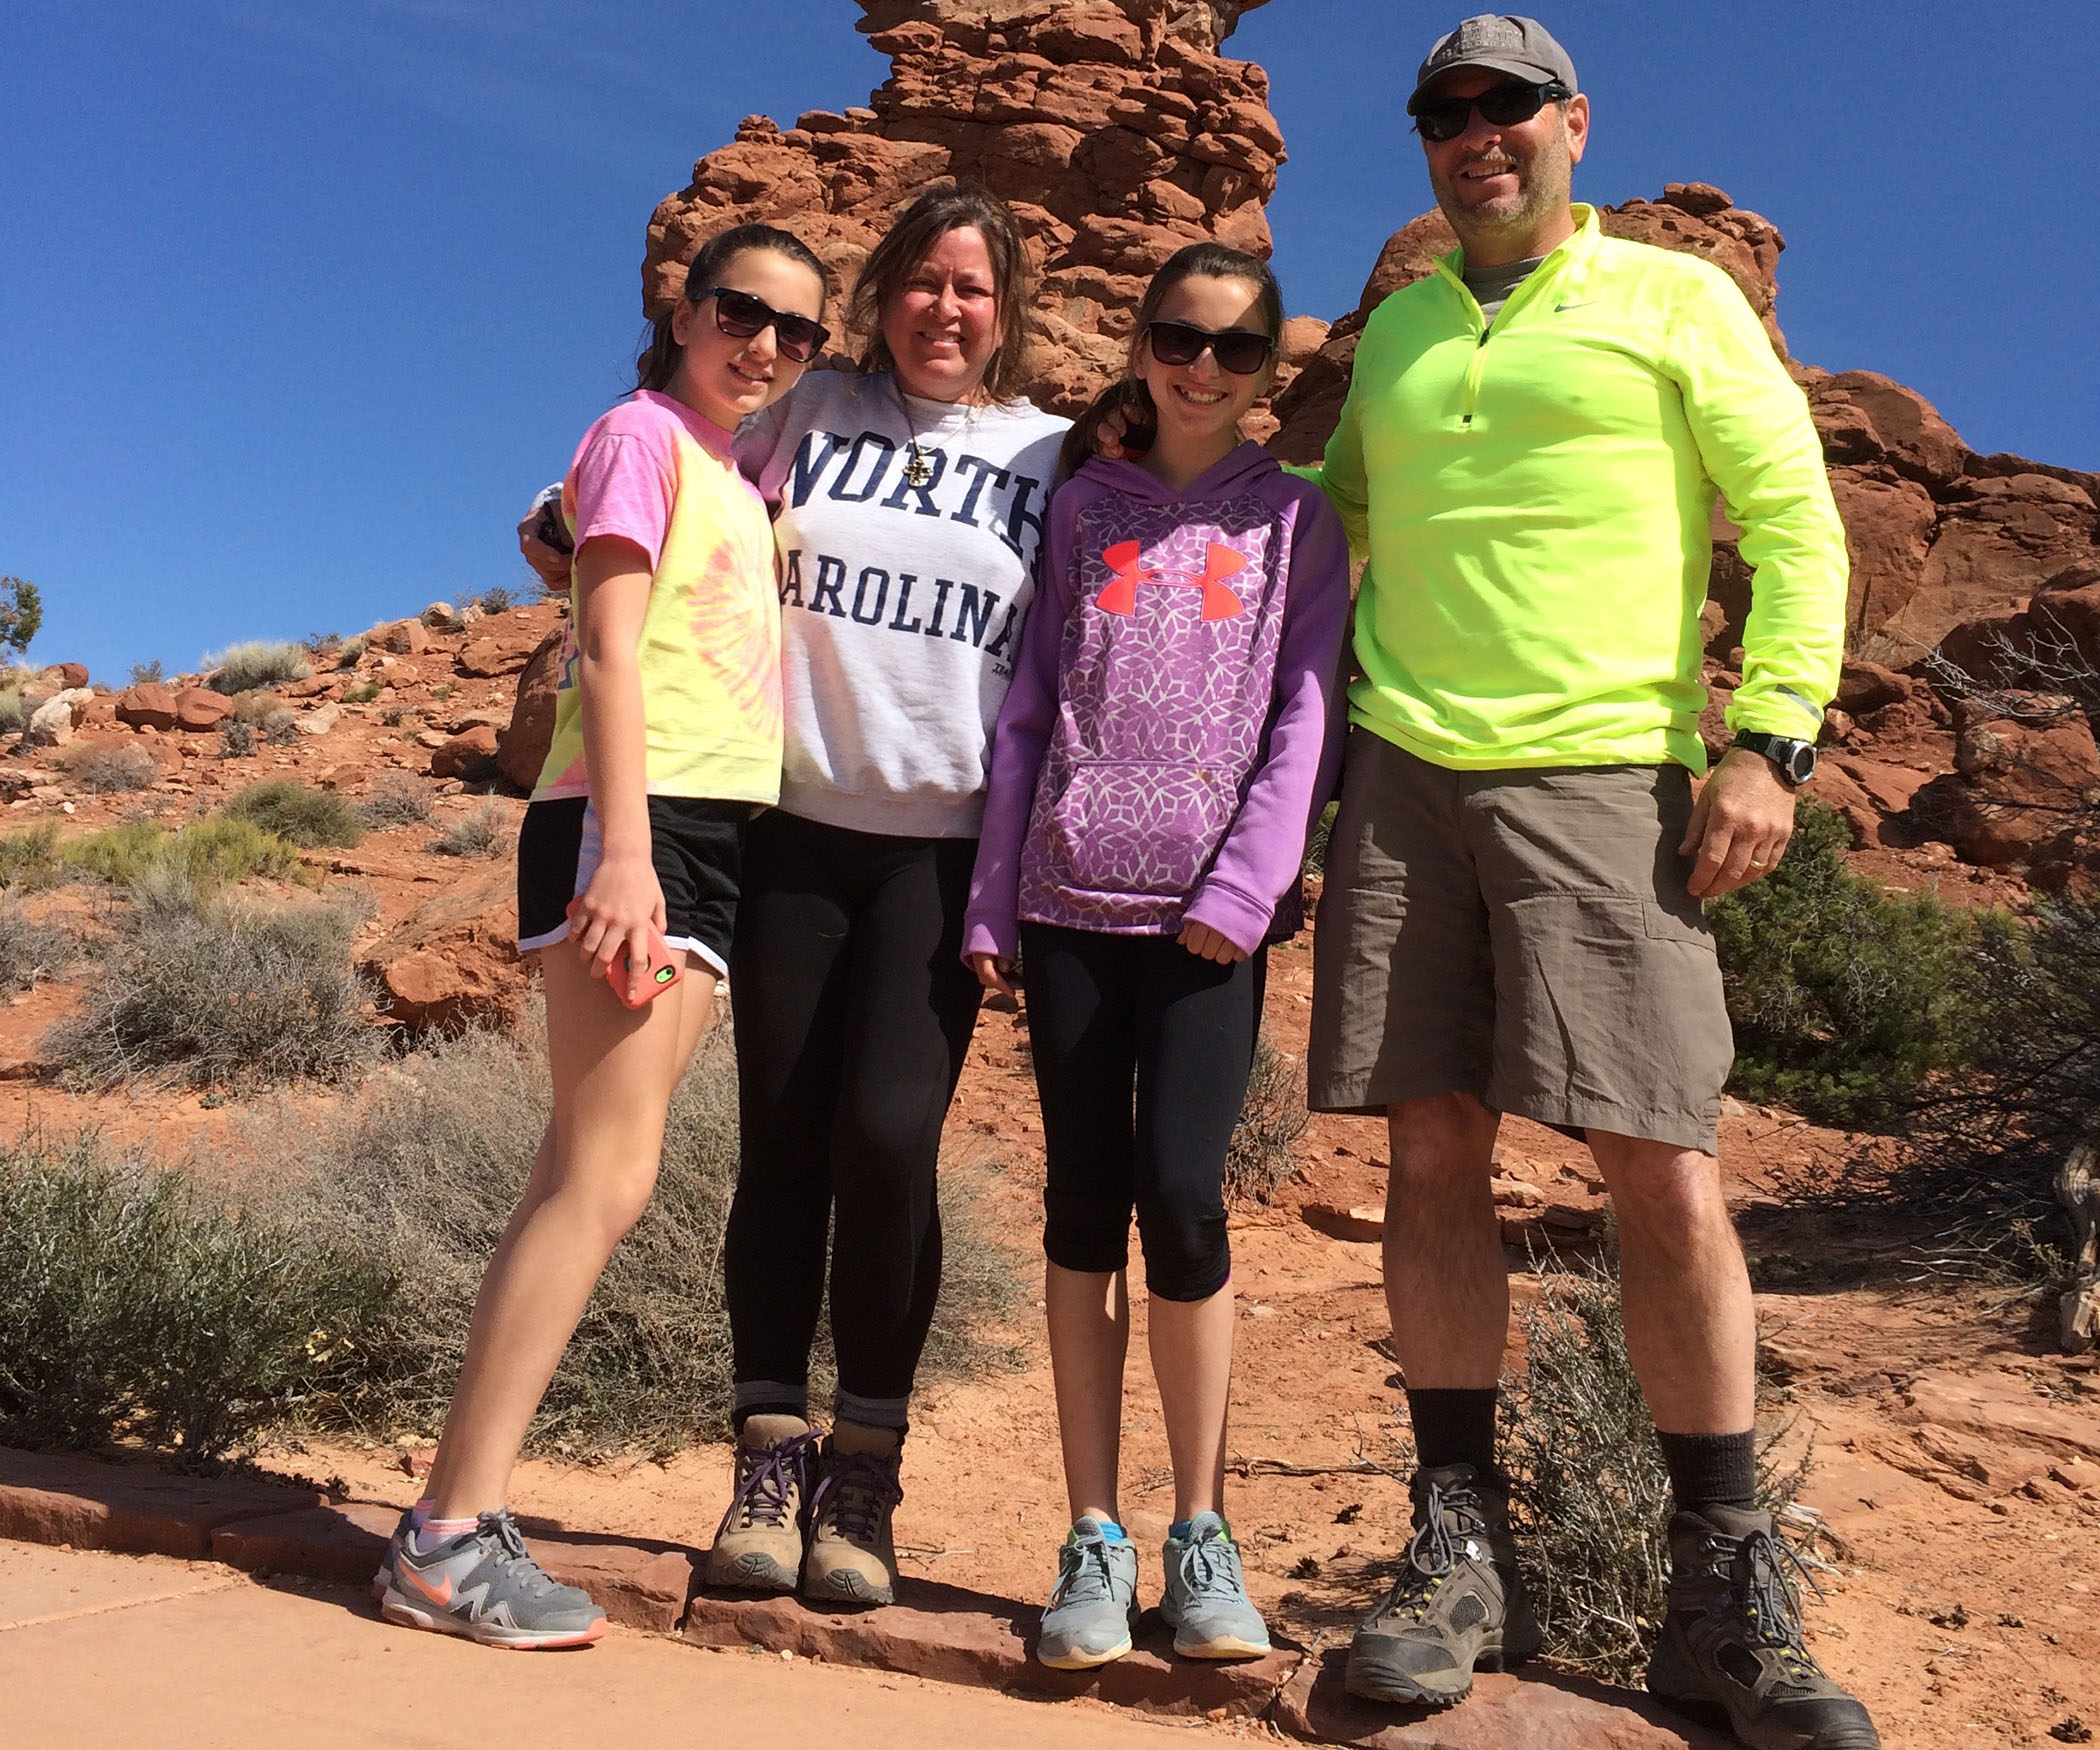 Greg Loftin, our ServiceNow expert enjoying the outdoors with his family in Denver.